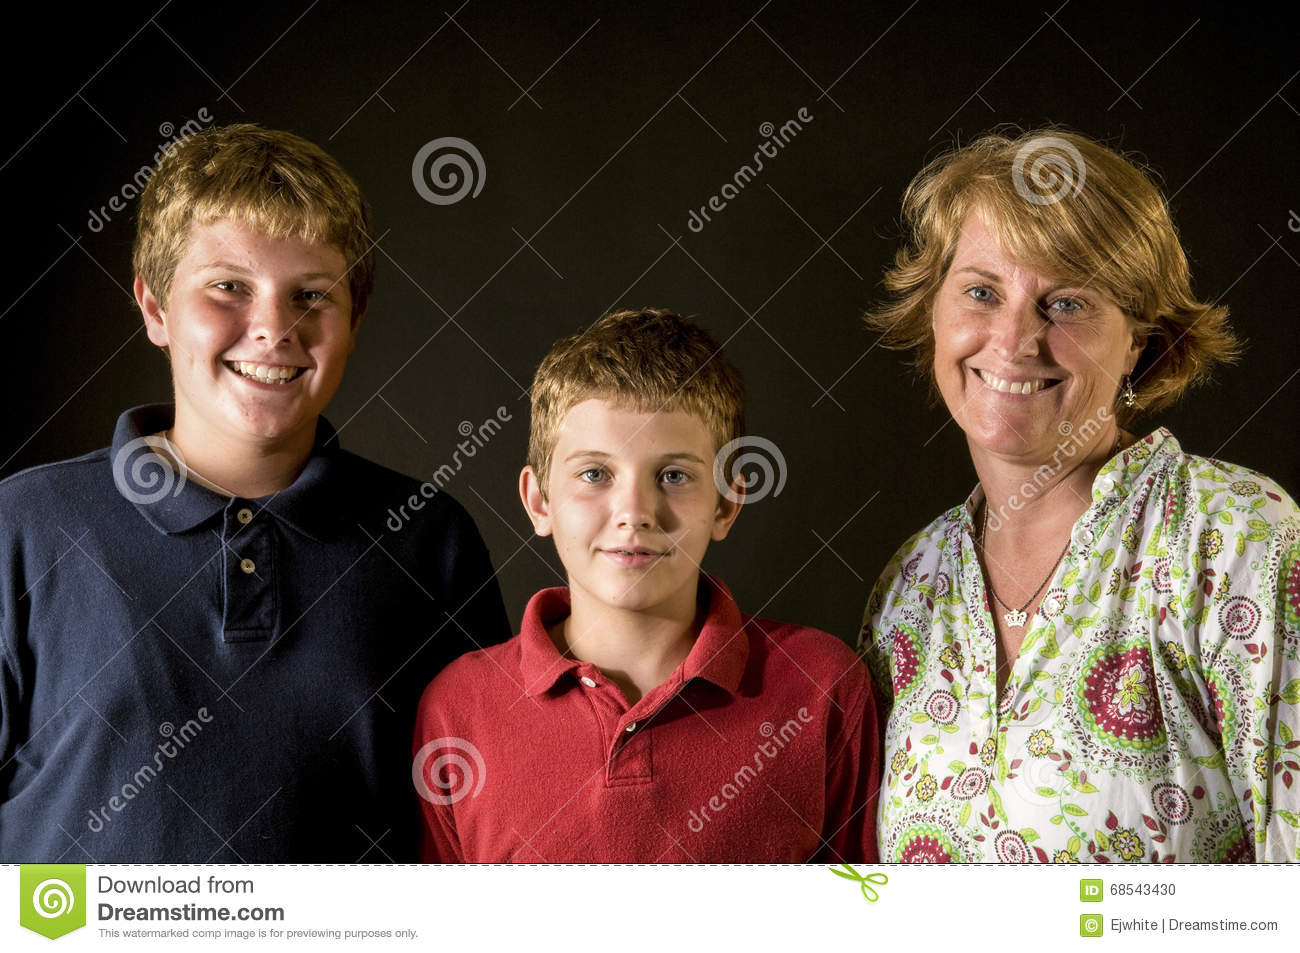 Mom Teen Boys Happy Single Parent Family Stock Images - Download 2 Royalty  Free Photos